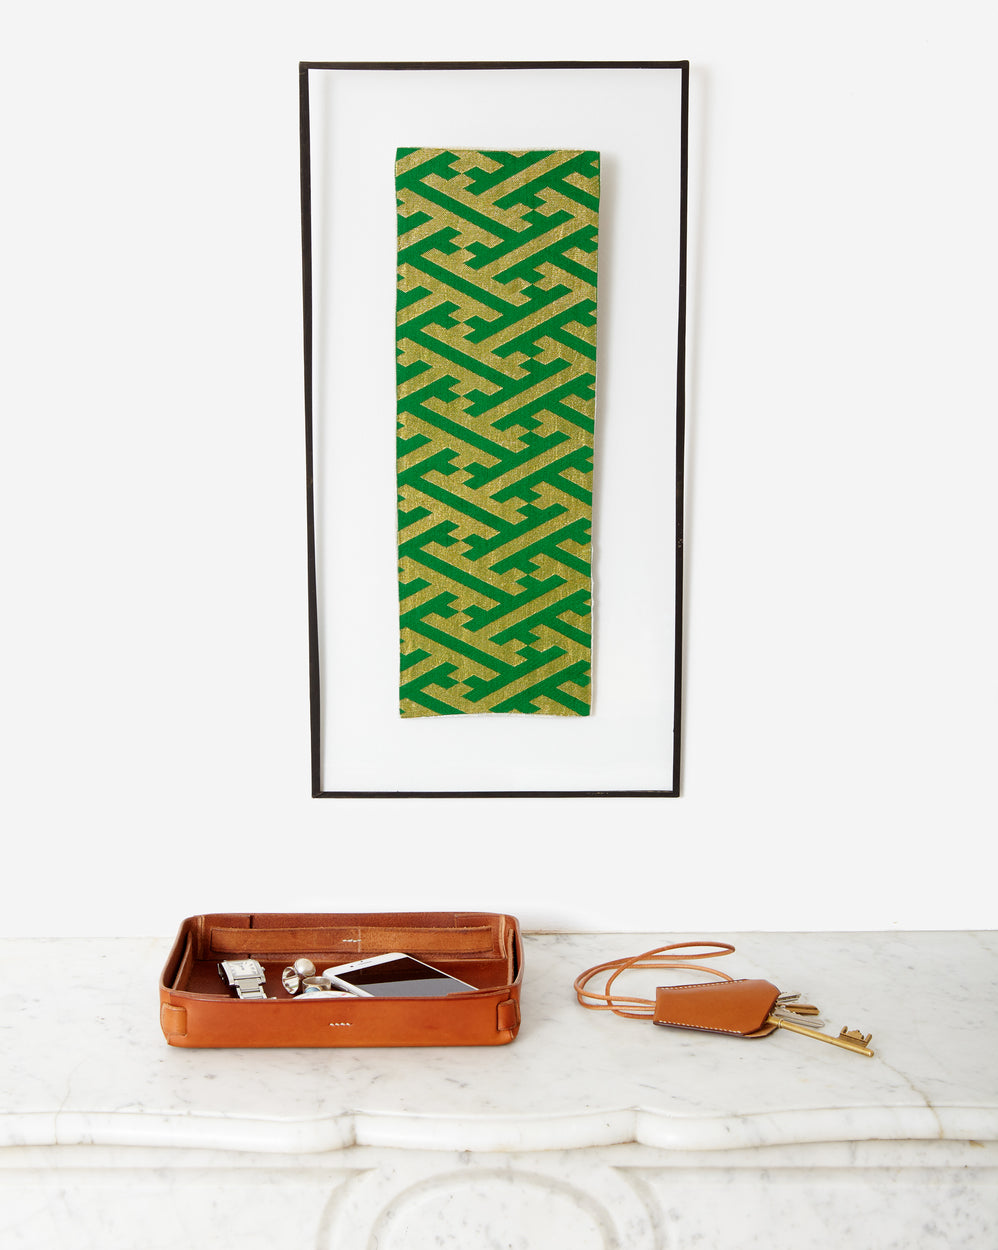 Hand-framed Japanese Obi – one of a kind